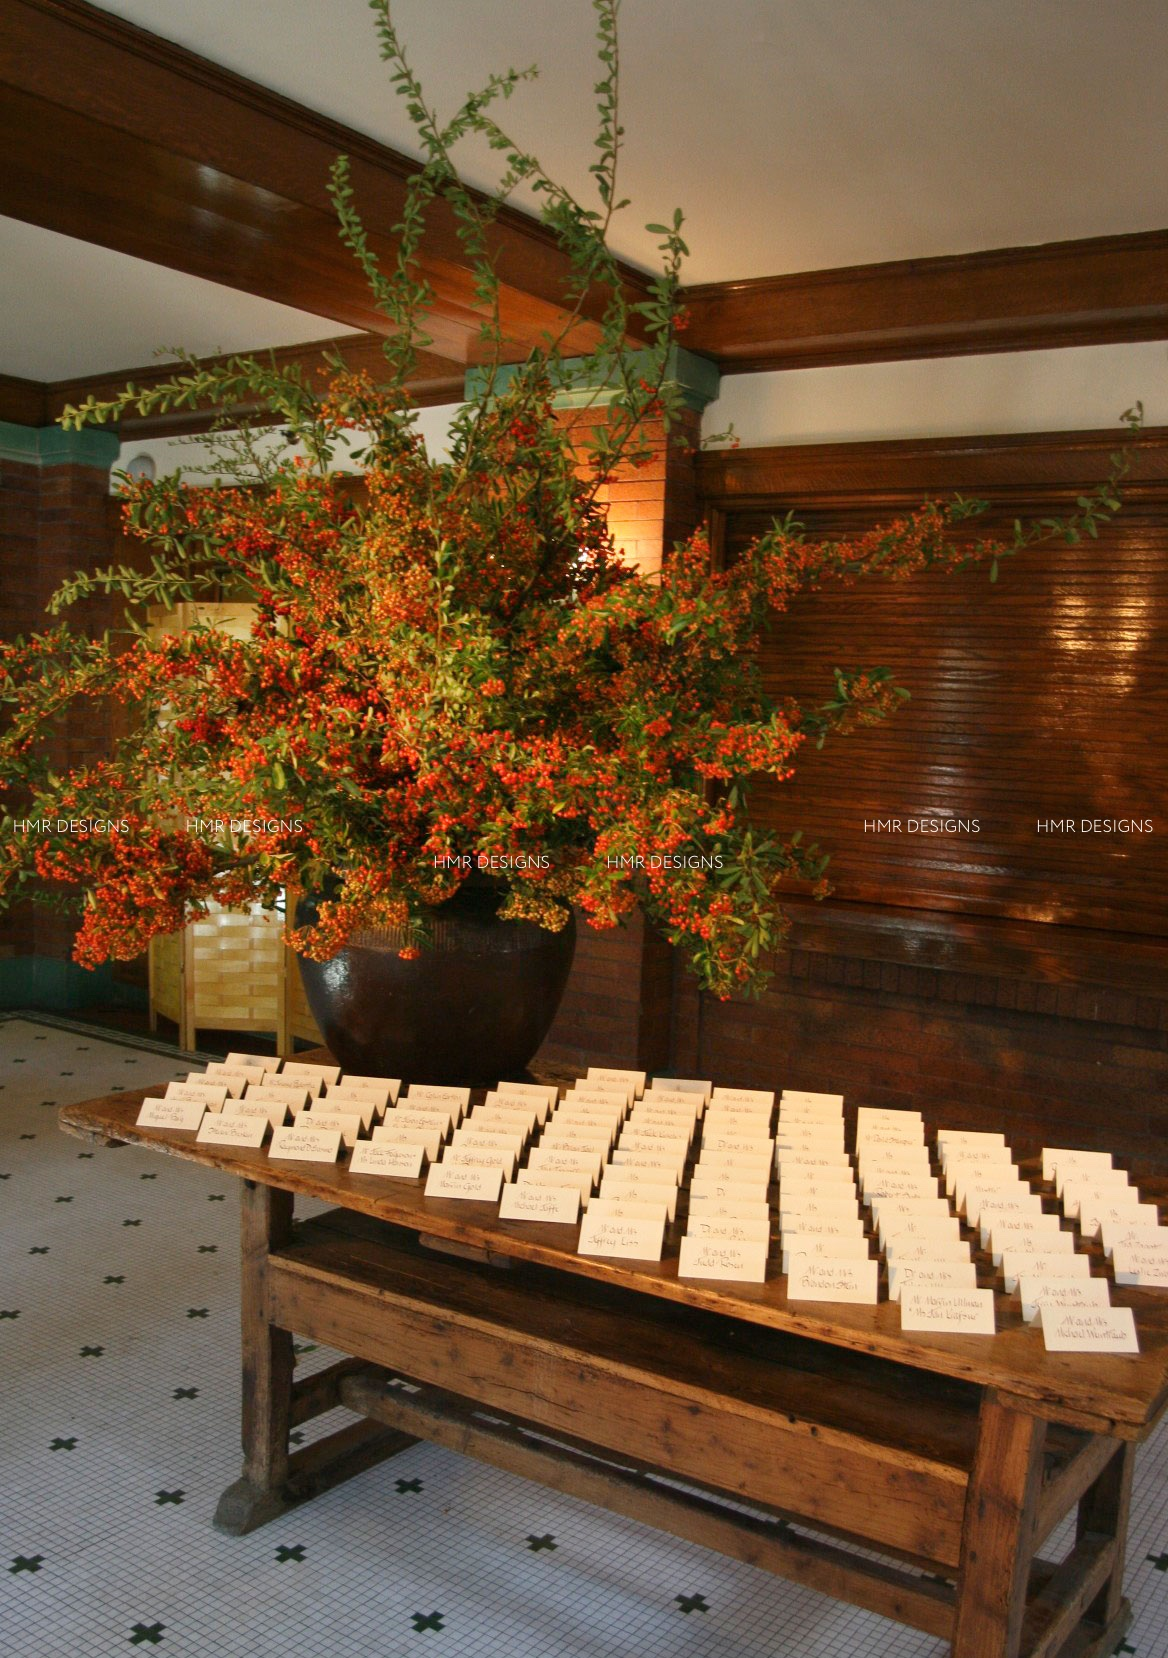 Ilex berries and place cards. HMR Designs